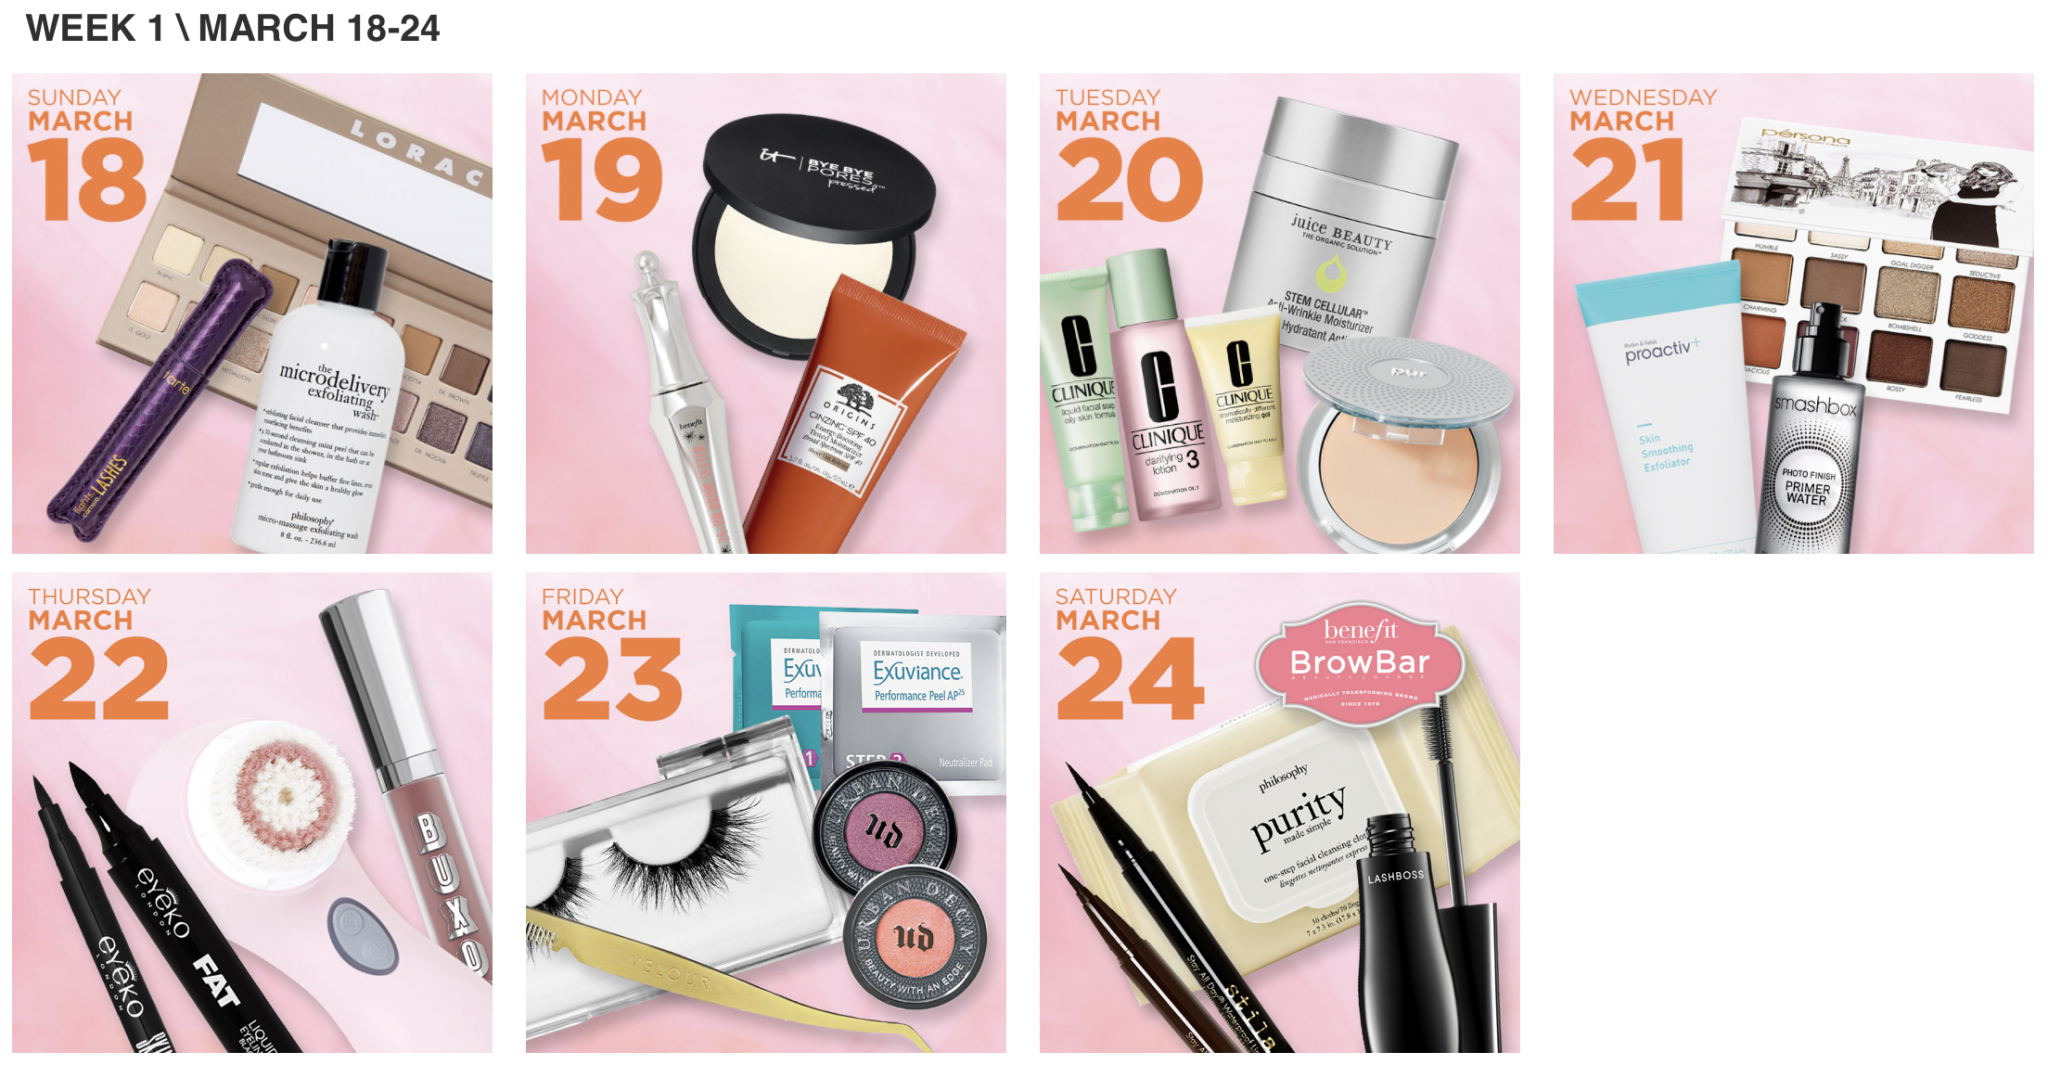 Ulta 21 Days of Beauty 2018 Week 1.png